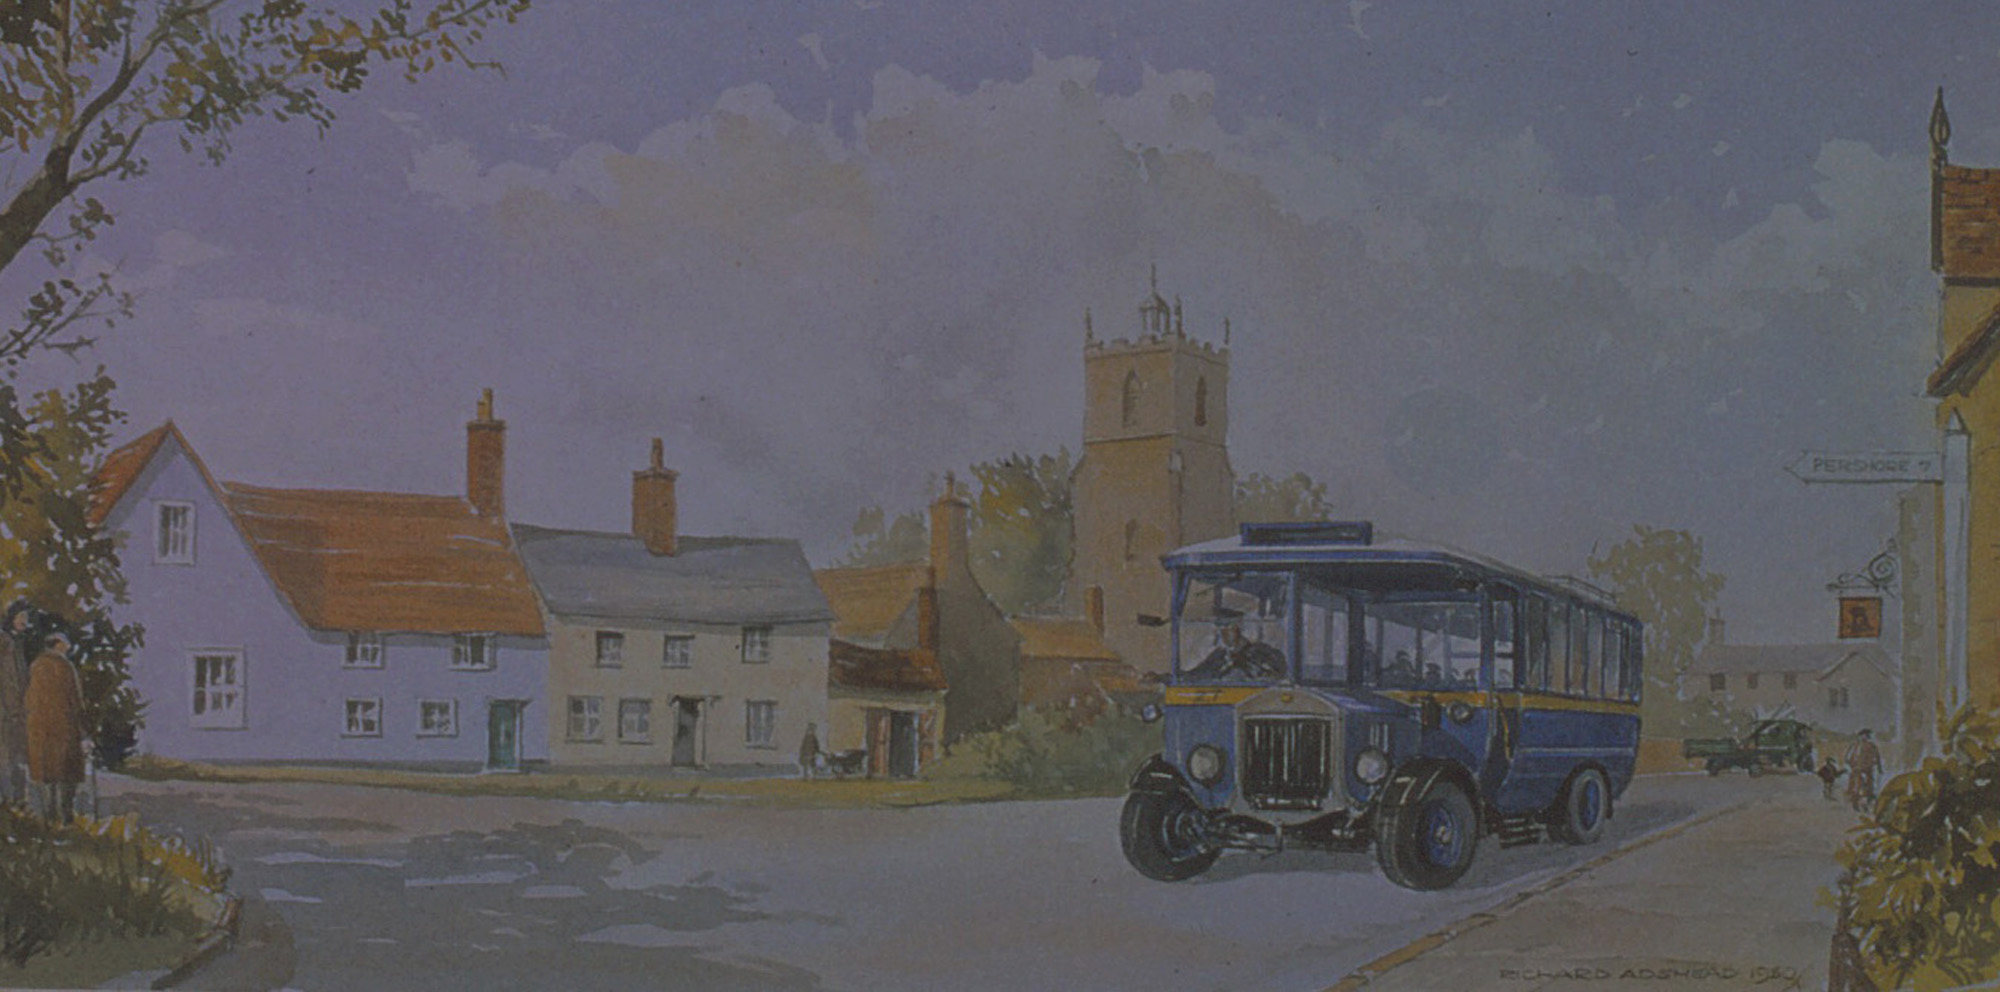 Pershore. Vintage bus in Village scene